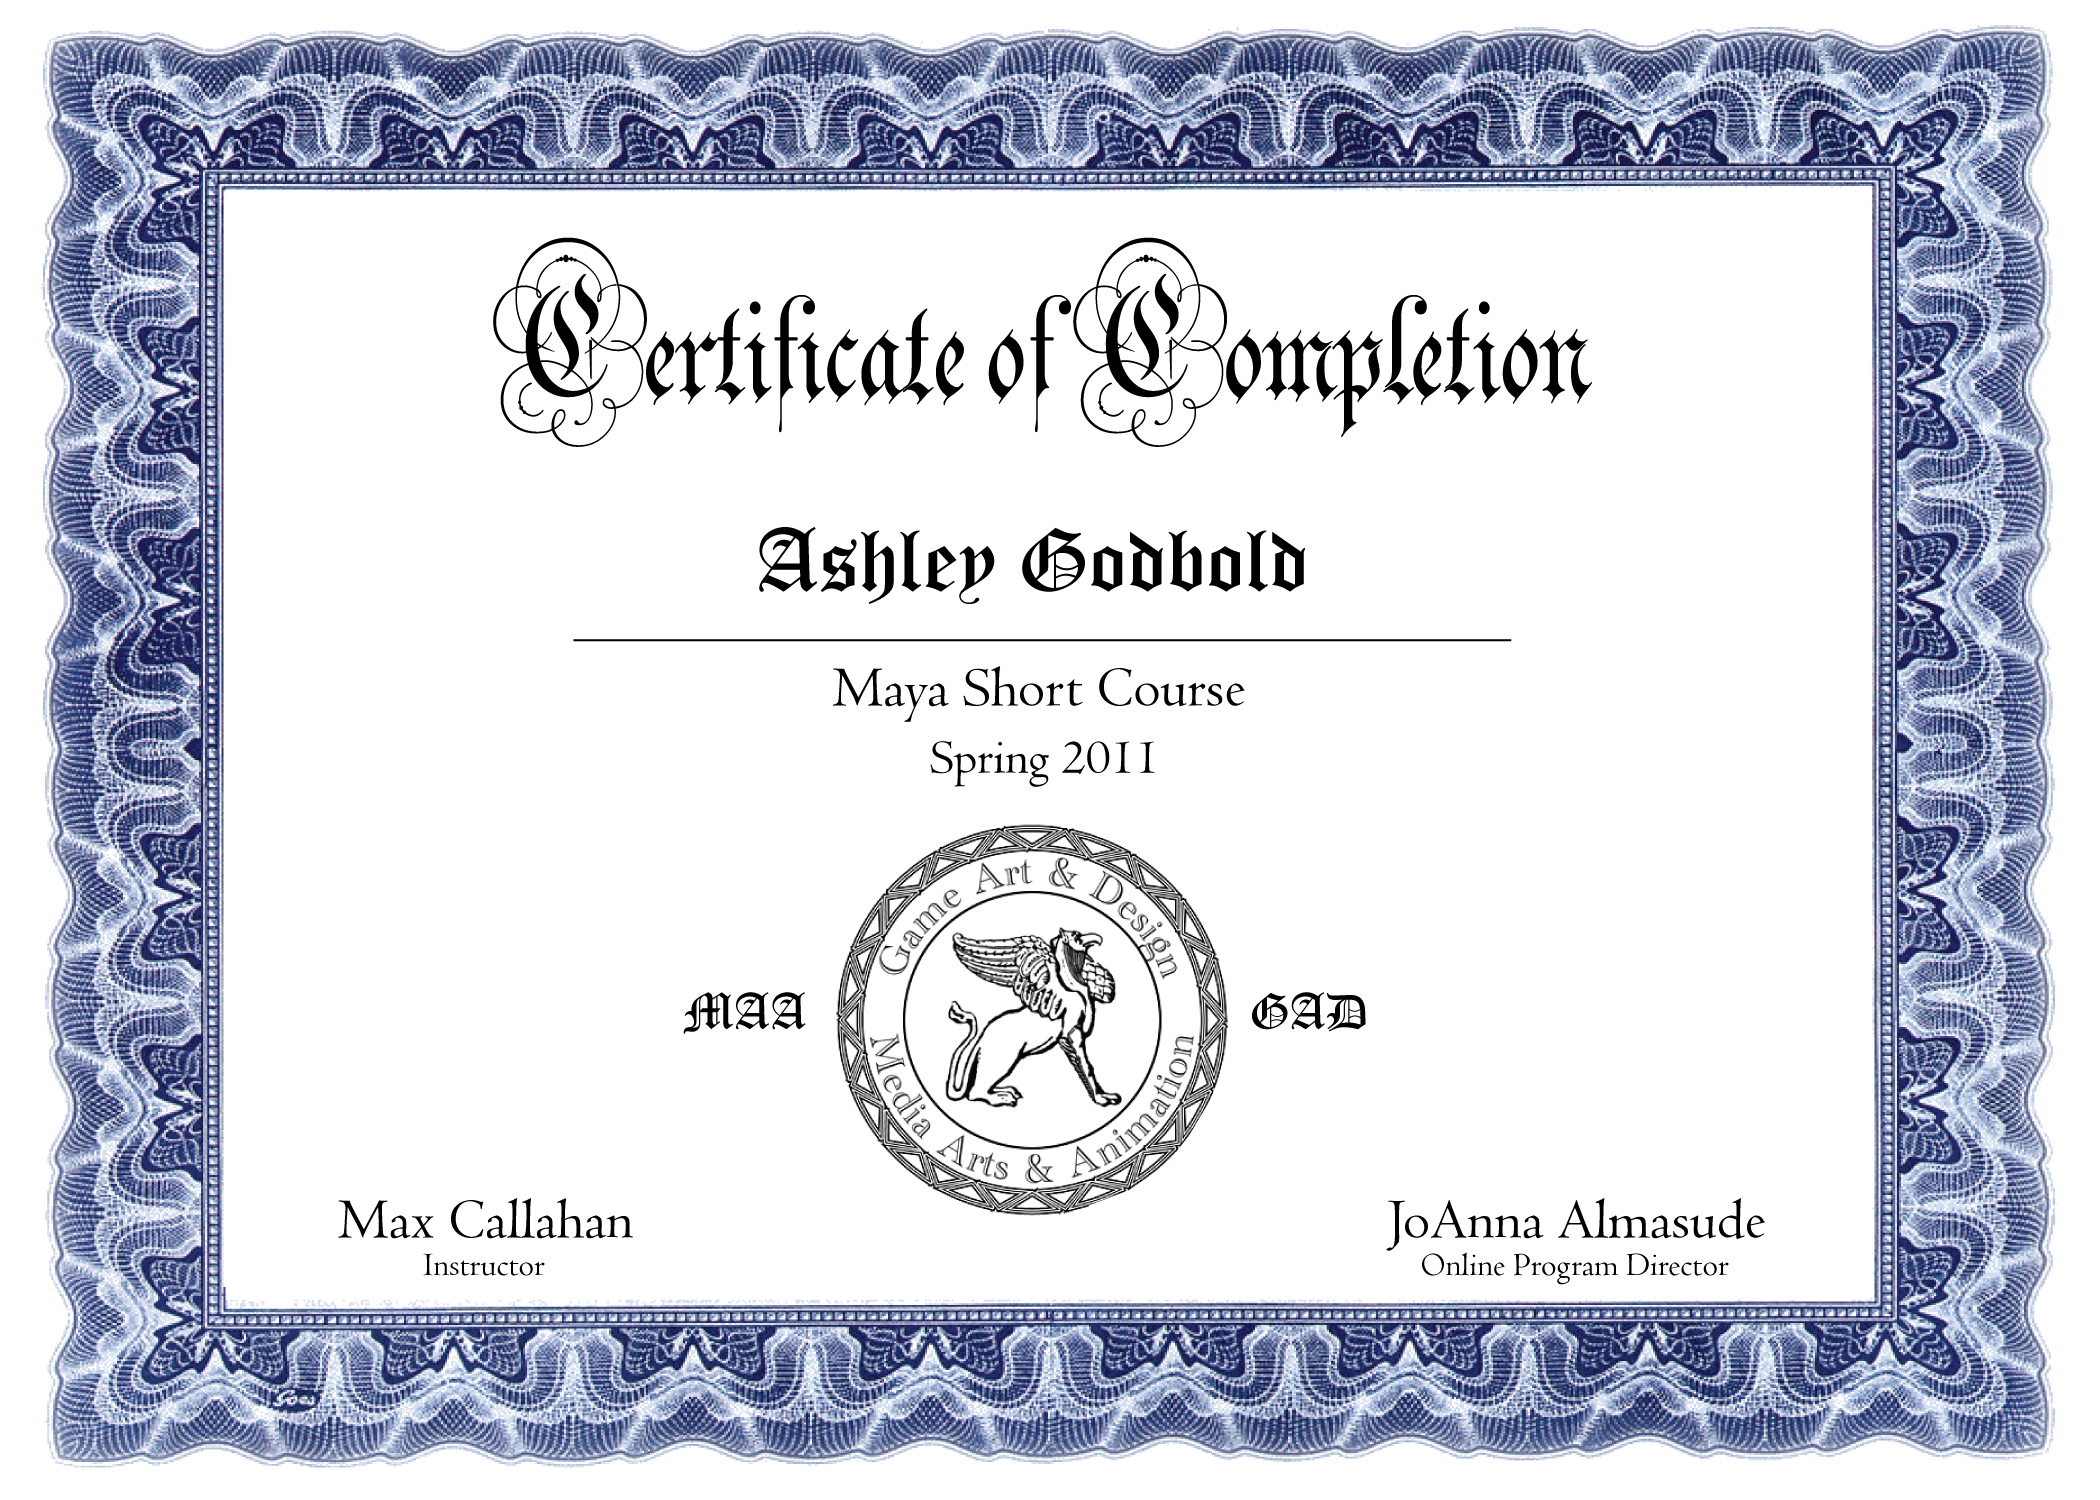 Maya Short Course Certificate Of Completion Ashley Godbold 39 S Blog